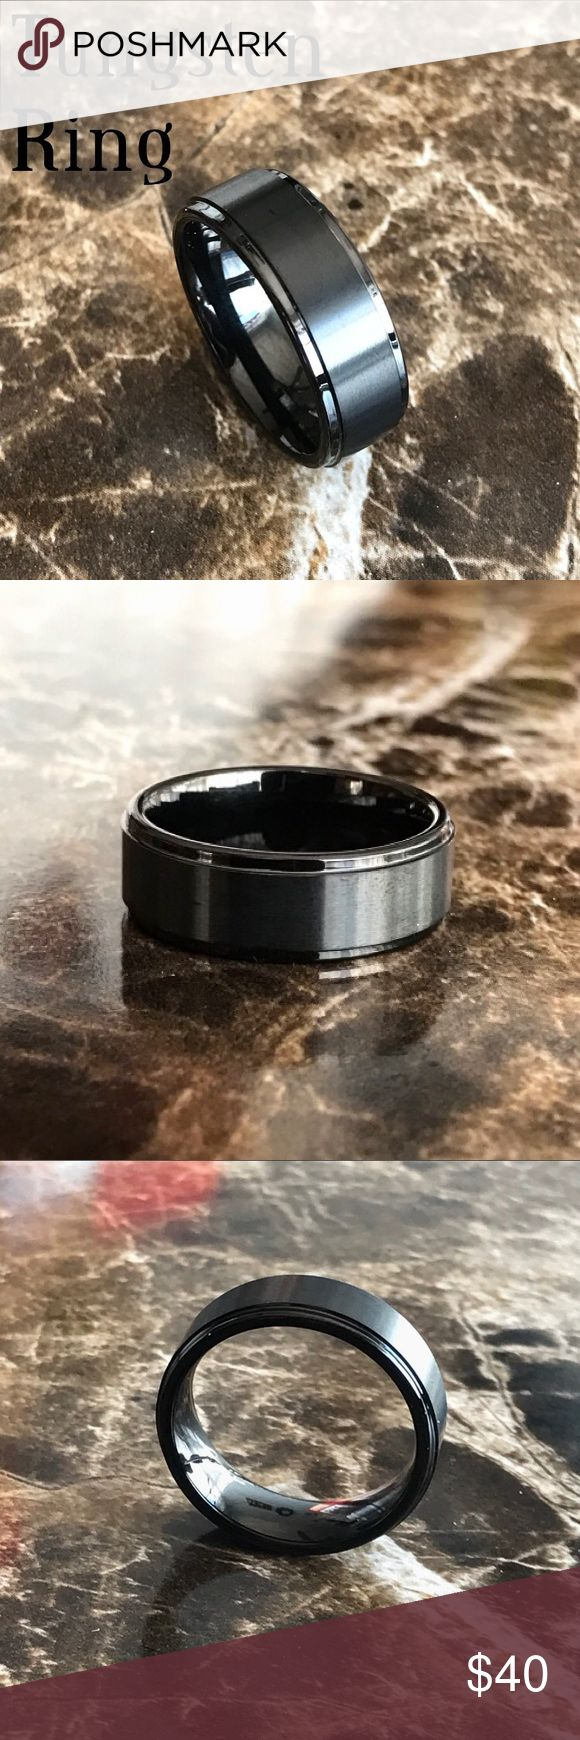 8MM Black Tungsten Carbide Ring Wedding Band Brand new Price firm No trades I do bundle  All sizes available   Tungsten is two times tougher than steel and twice the density of steel. It will not rust, tarnish or turn your finger green.                                              ~Ring box included ~ Accessories Jewelry